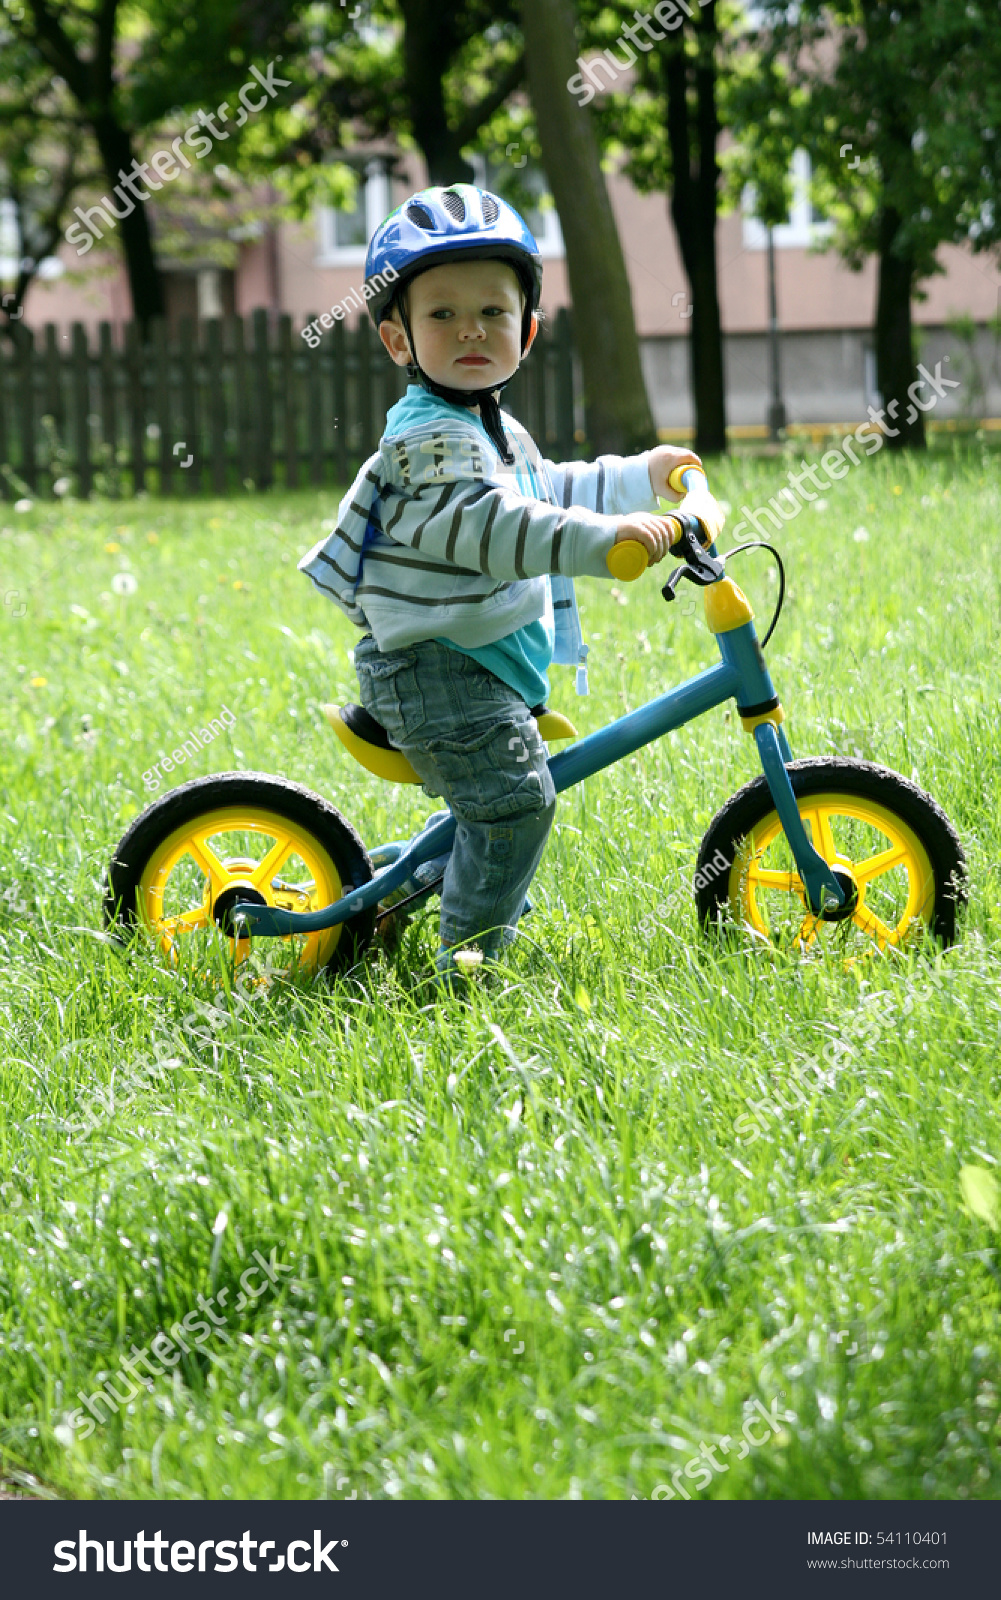 19 Months Old Baby Boy Riding On His First Bike In A